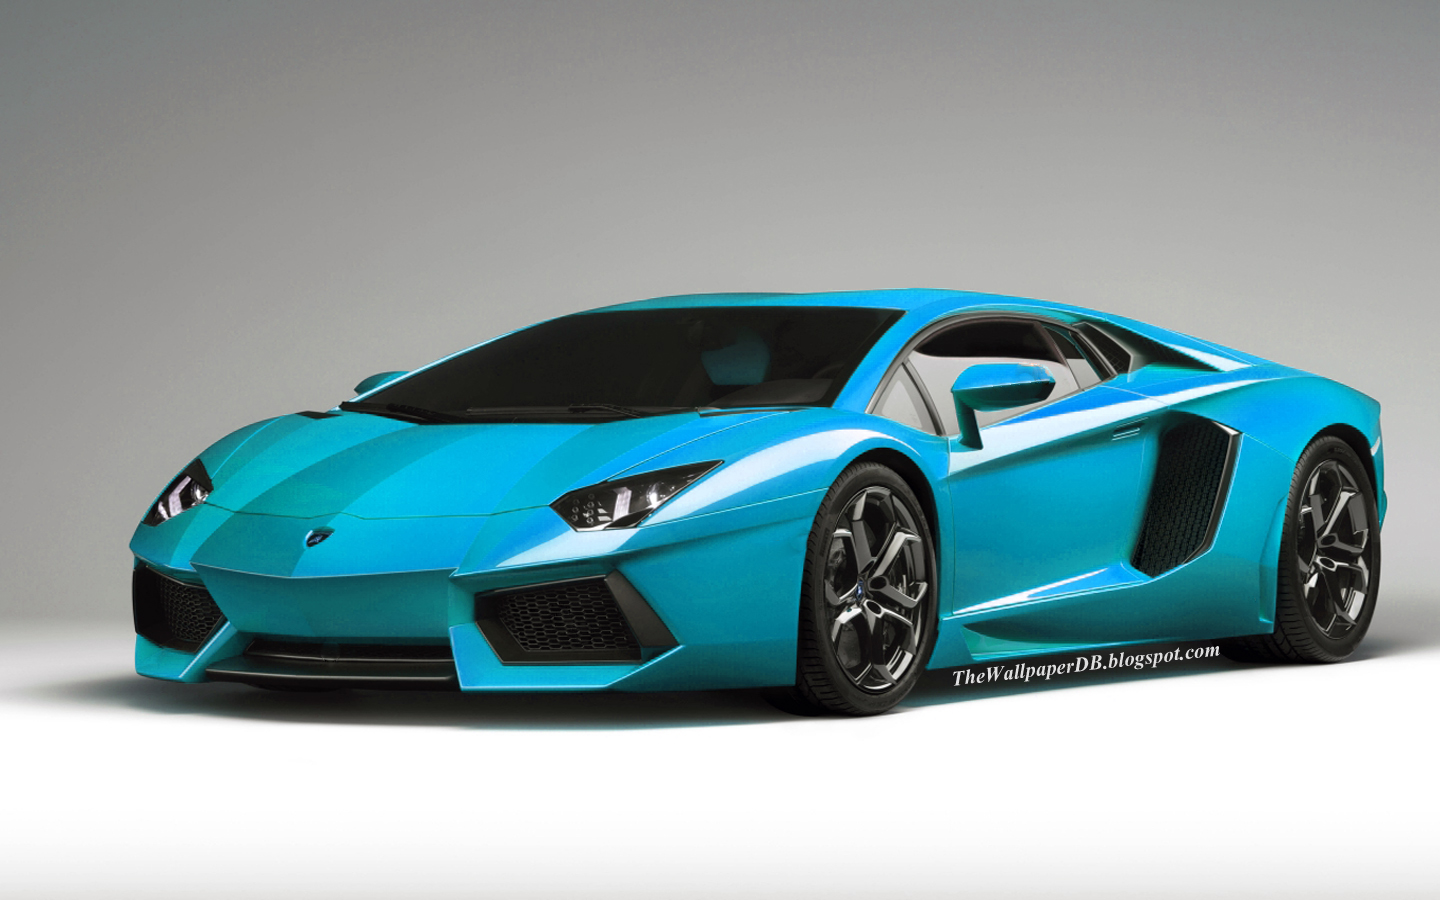 Lamborghini aventador wallpaper hd turquoise blue hd wallpaper The 1440x900